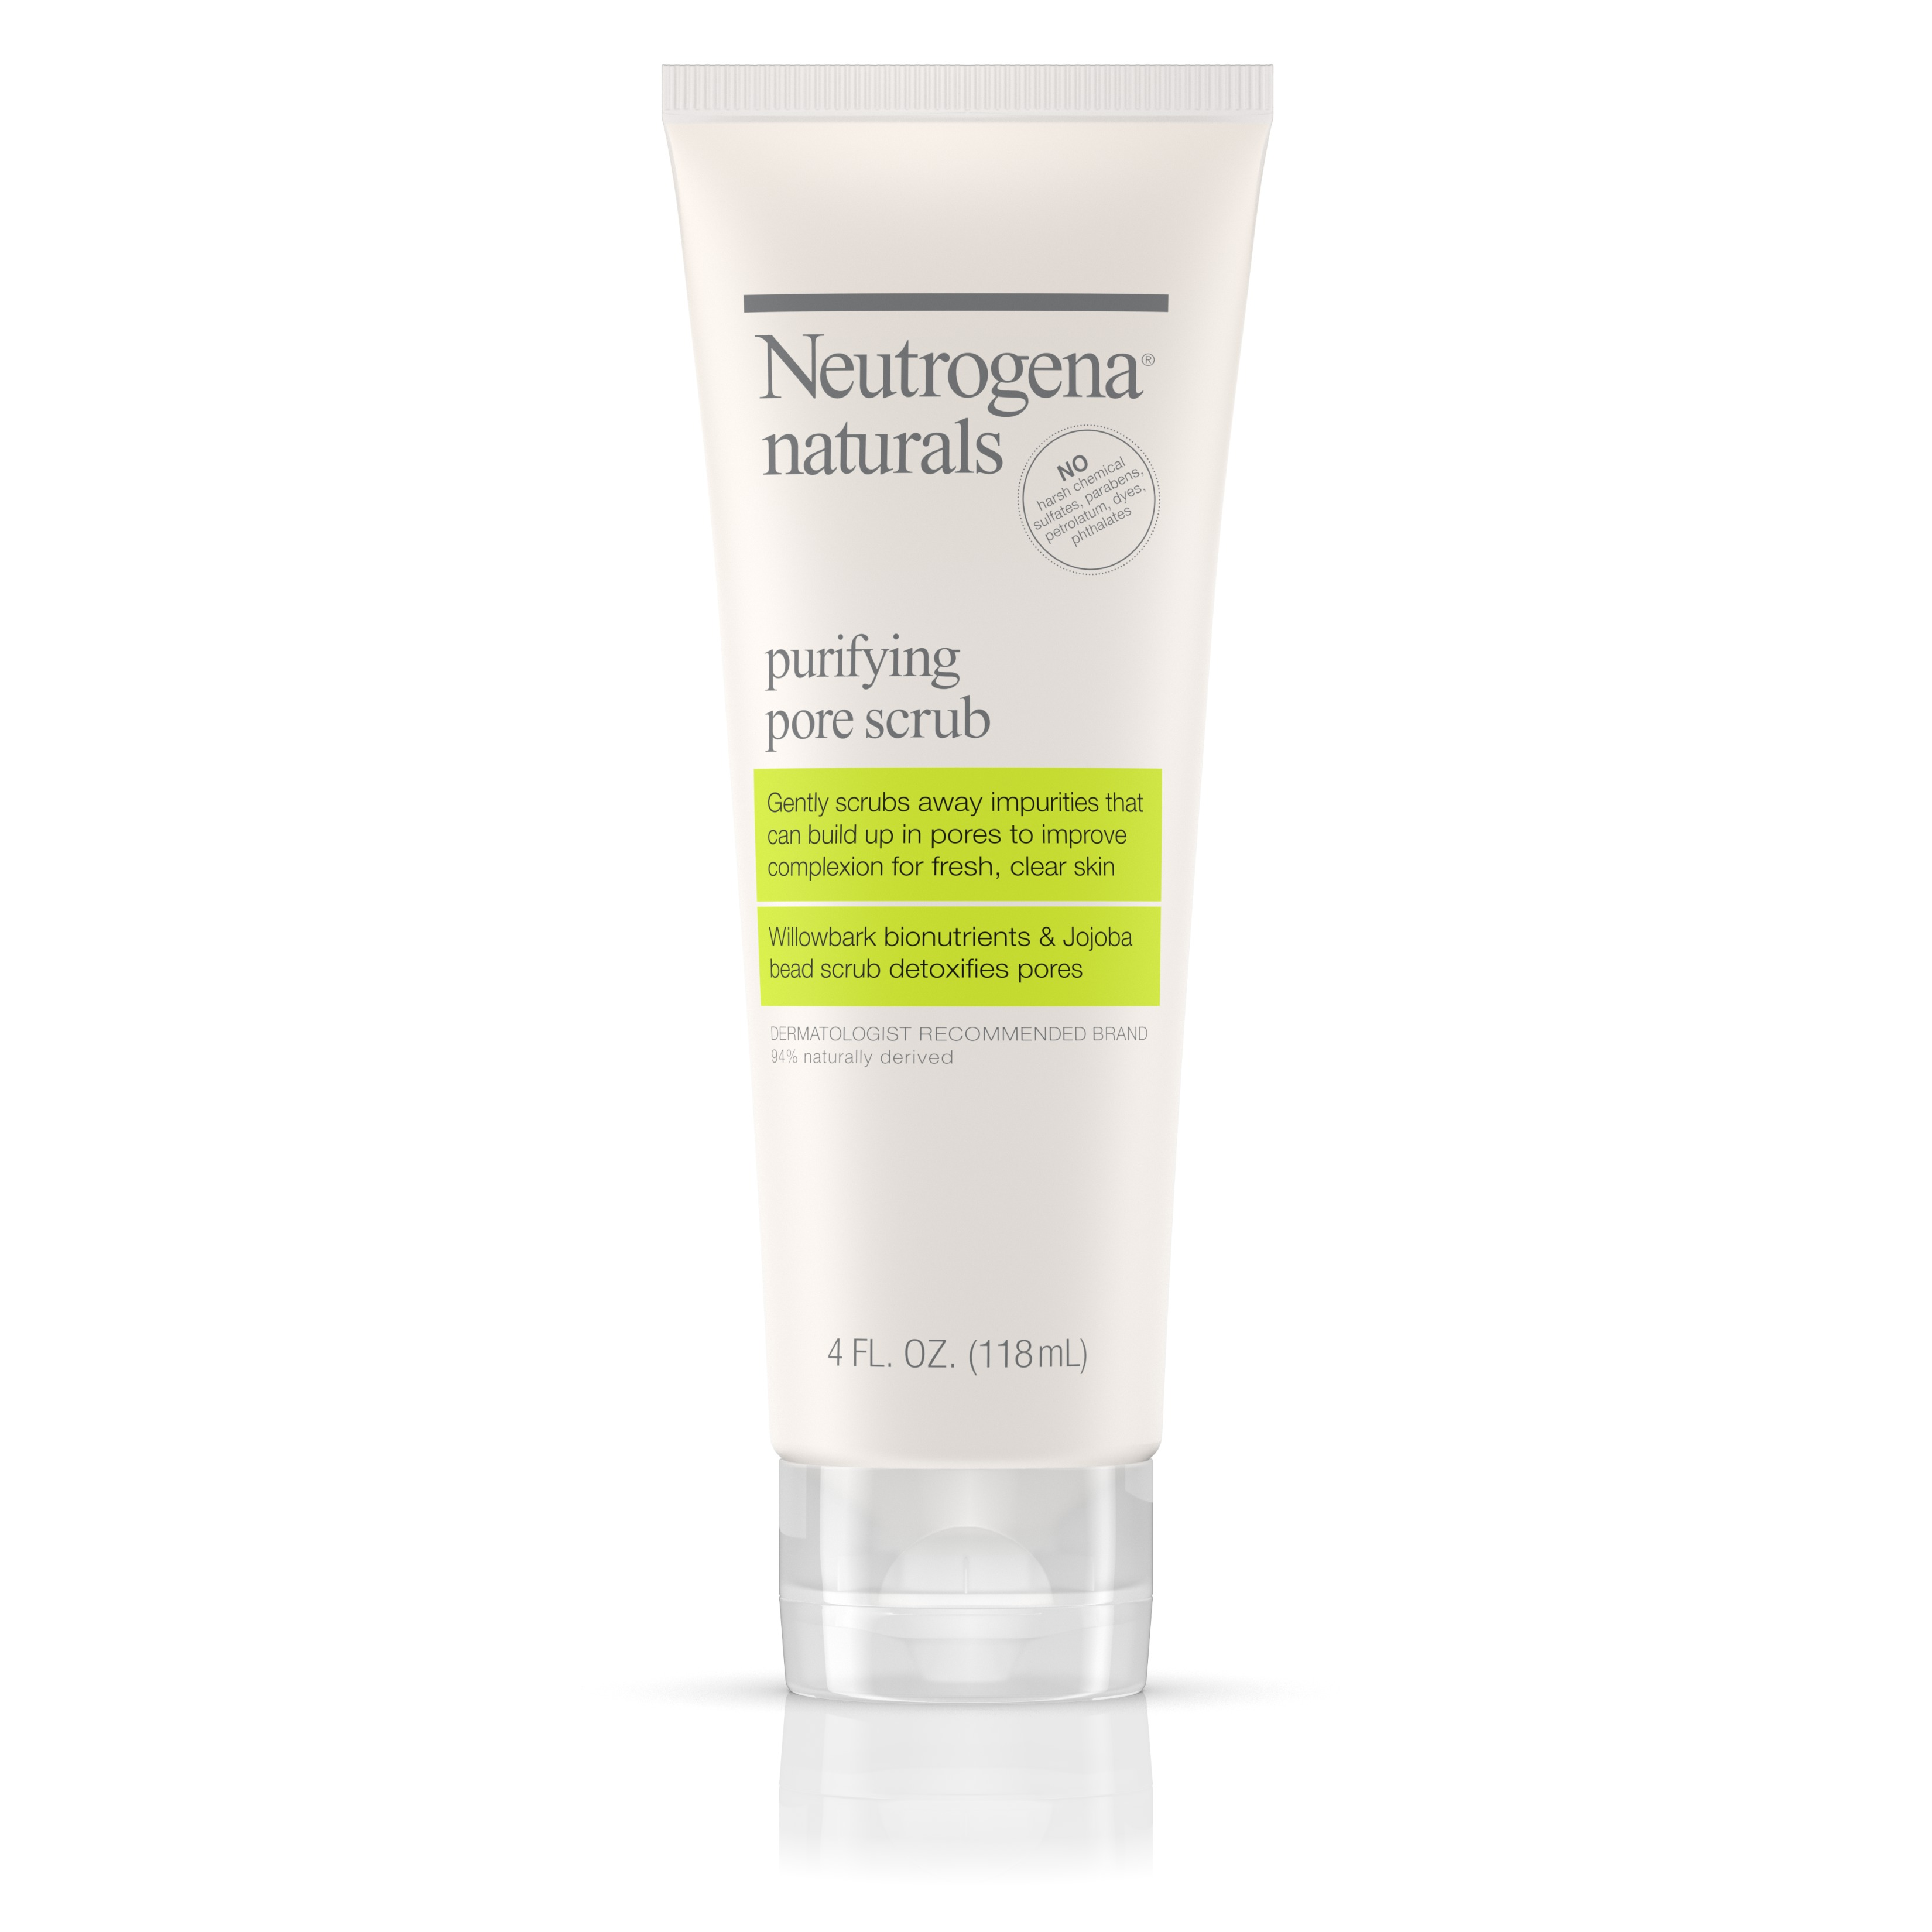 Neutrogena Naturals Purifying Pore Scrub, 4 Fl. Oz.